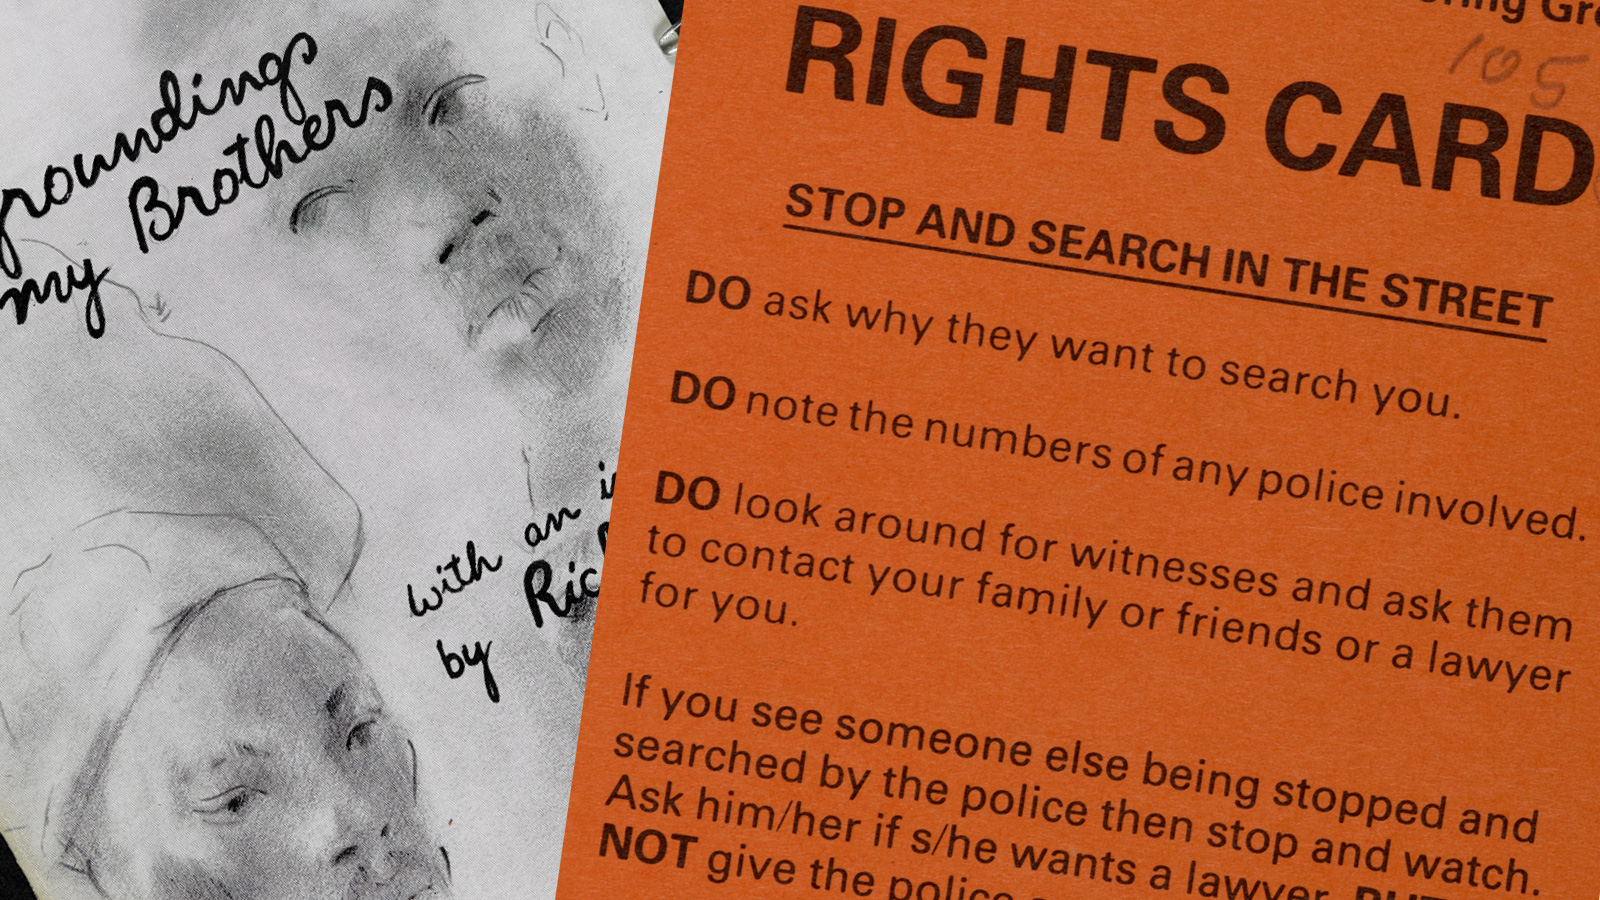 Crop from the front cover for The Groundings With My Brothers and a rights card produced by the North Kensington Police Monitoring Group